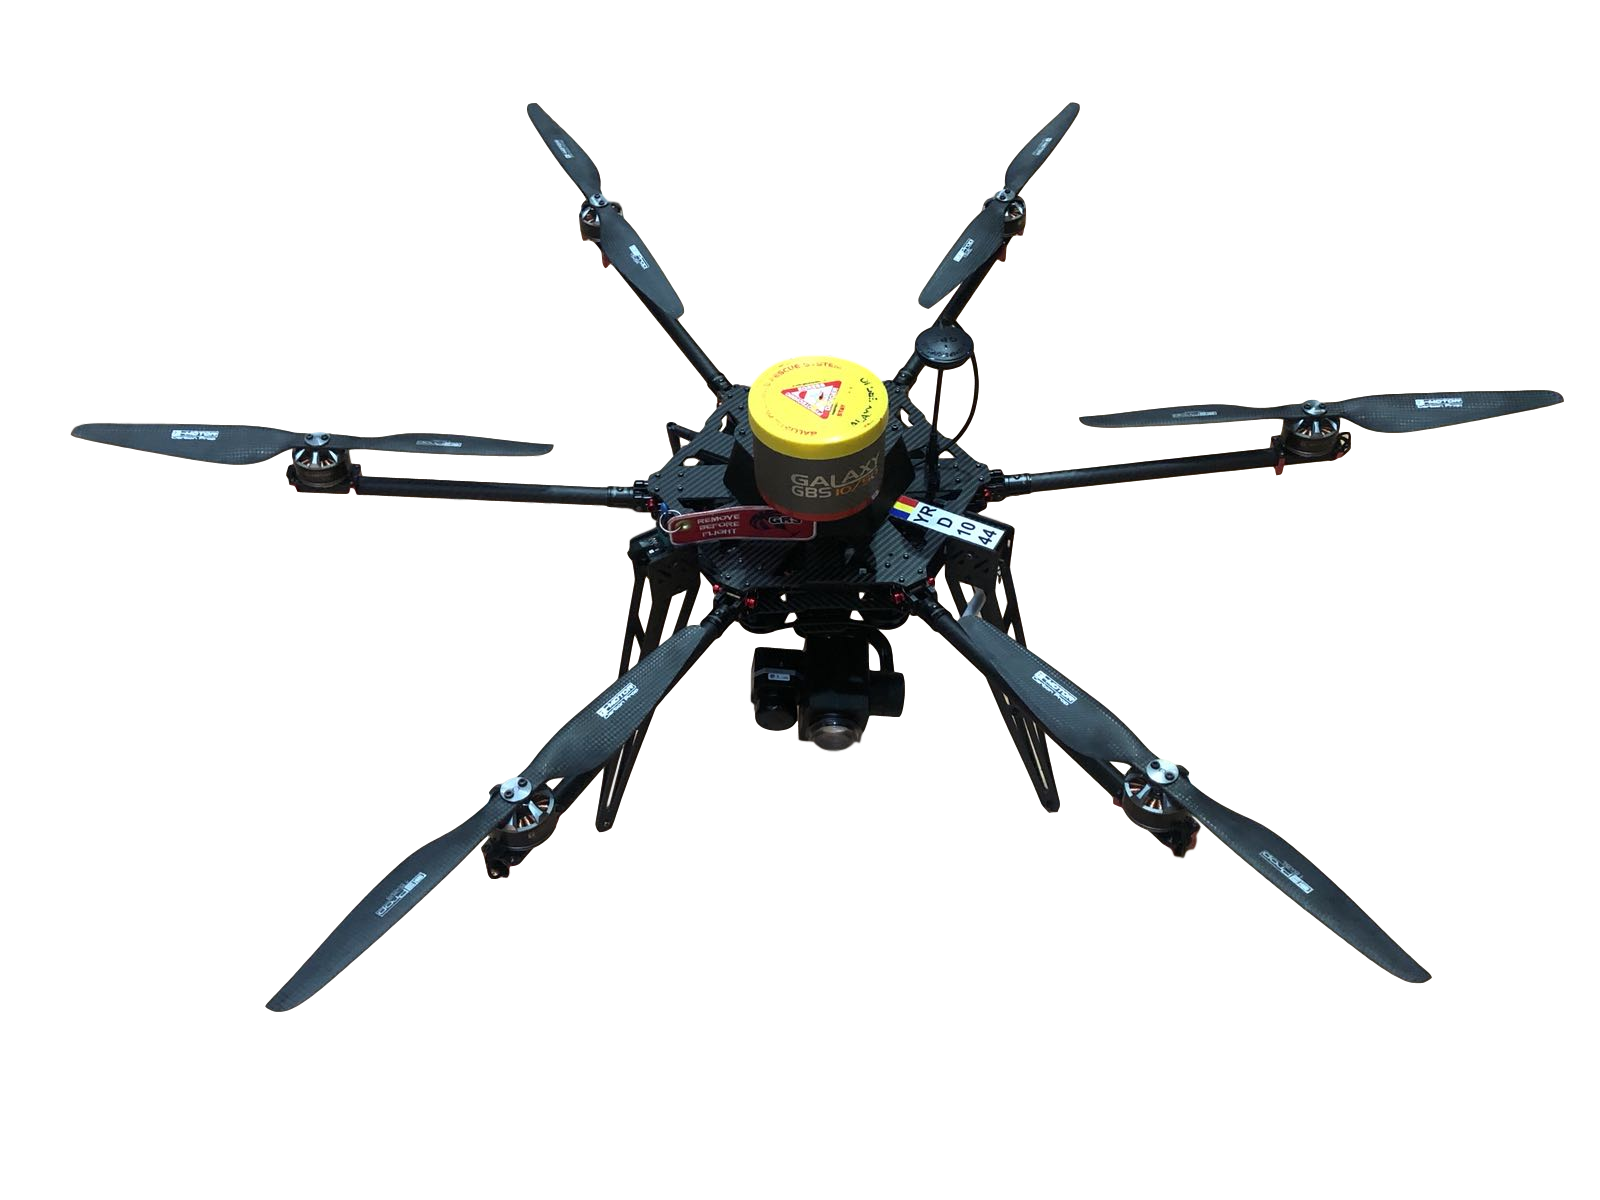 https://www.dronezone.ro/wp-content/uploads/2018/09/dz6_clipped_rev_1.png